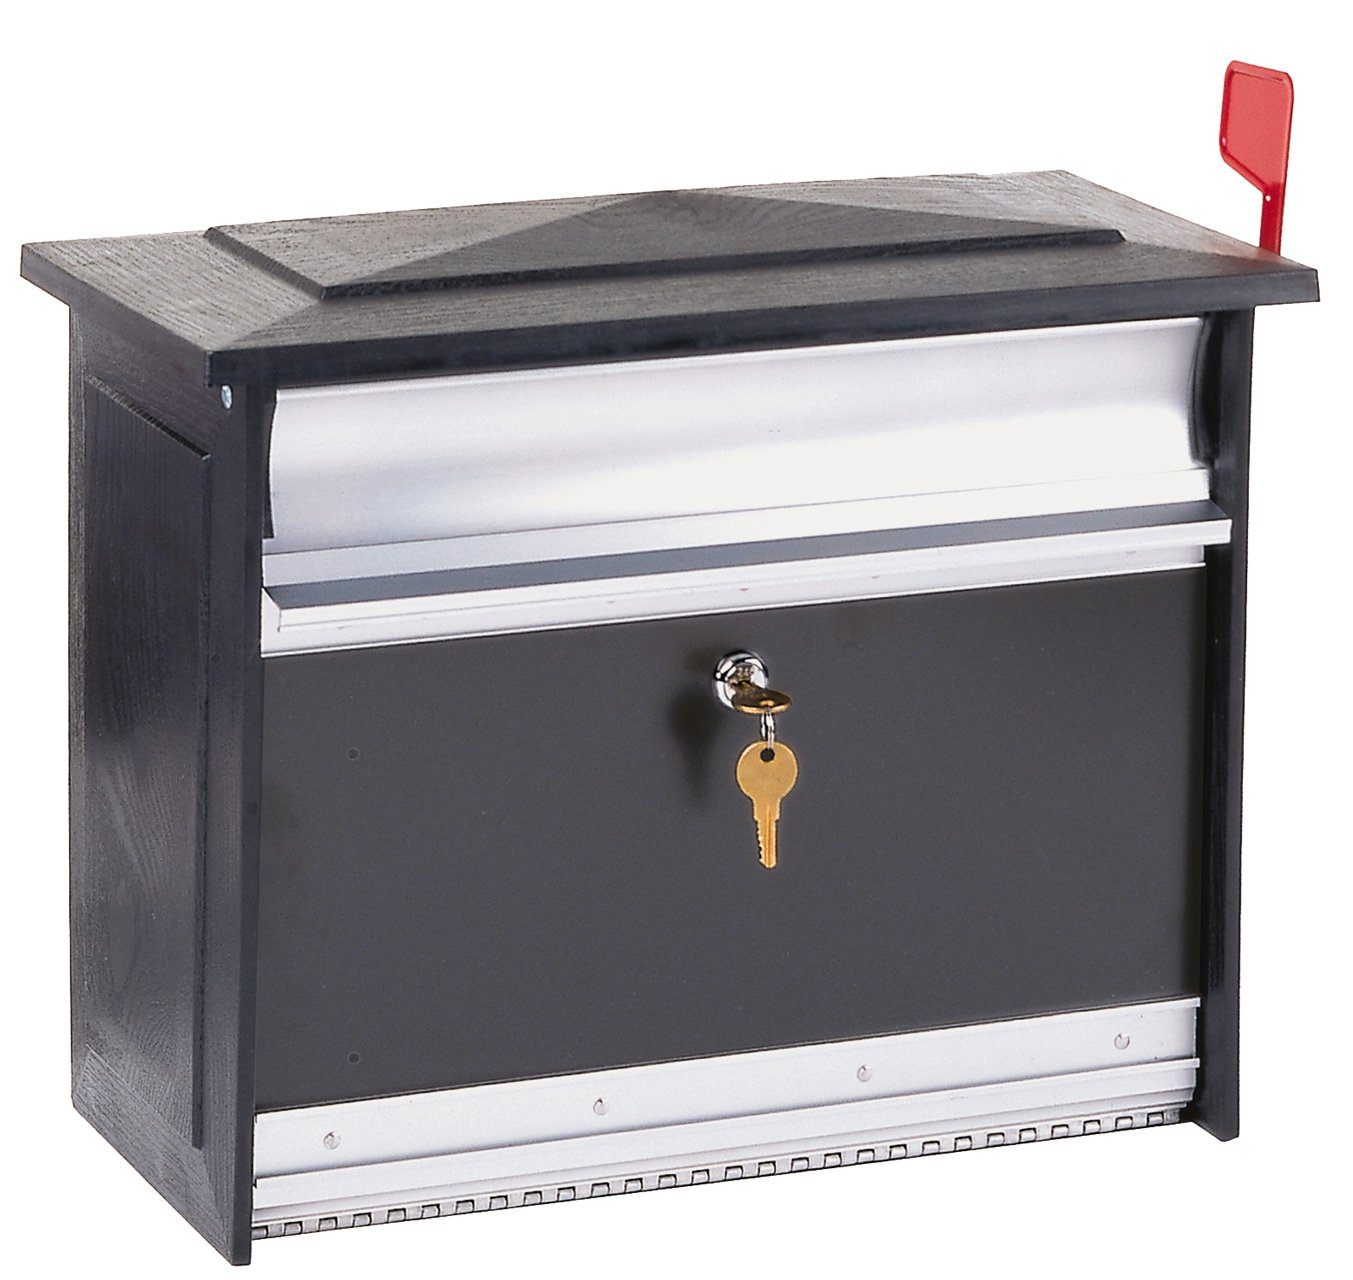 Mailboxes Gibraltar Msk00000 Large Lockable Security Wall